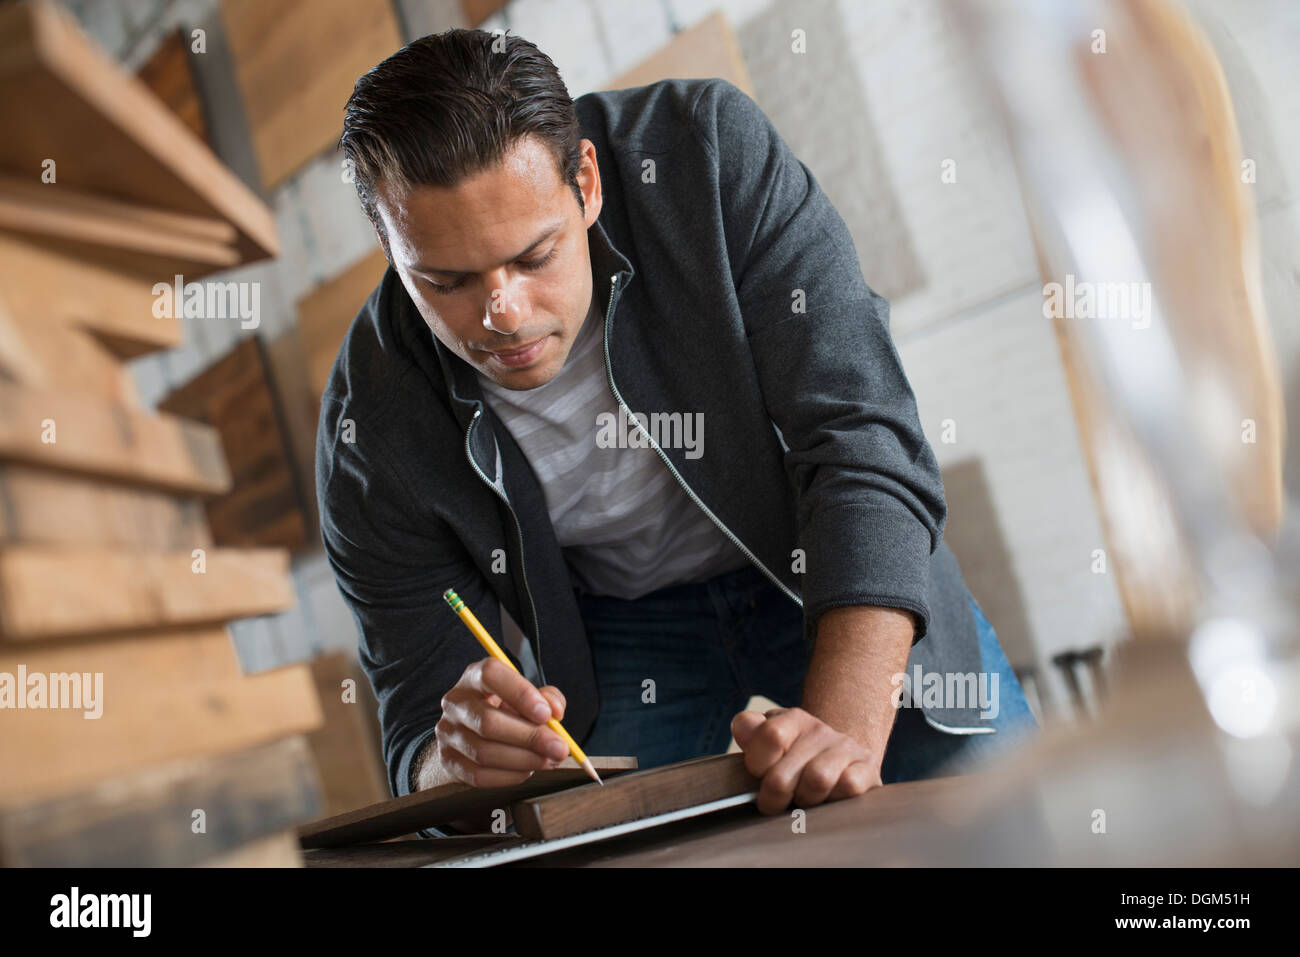 A young man in a workshop which uses recycled and reclaimed lumber using paper and pen to keep records. - Stock Image